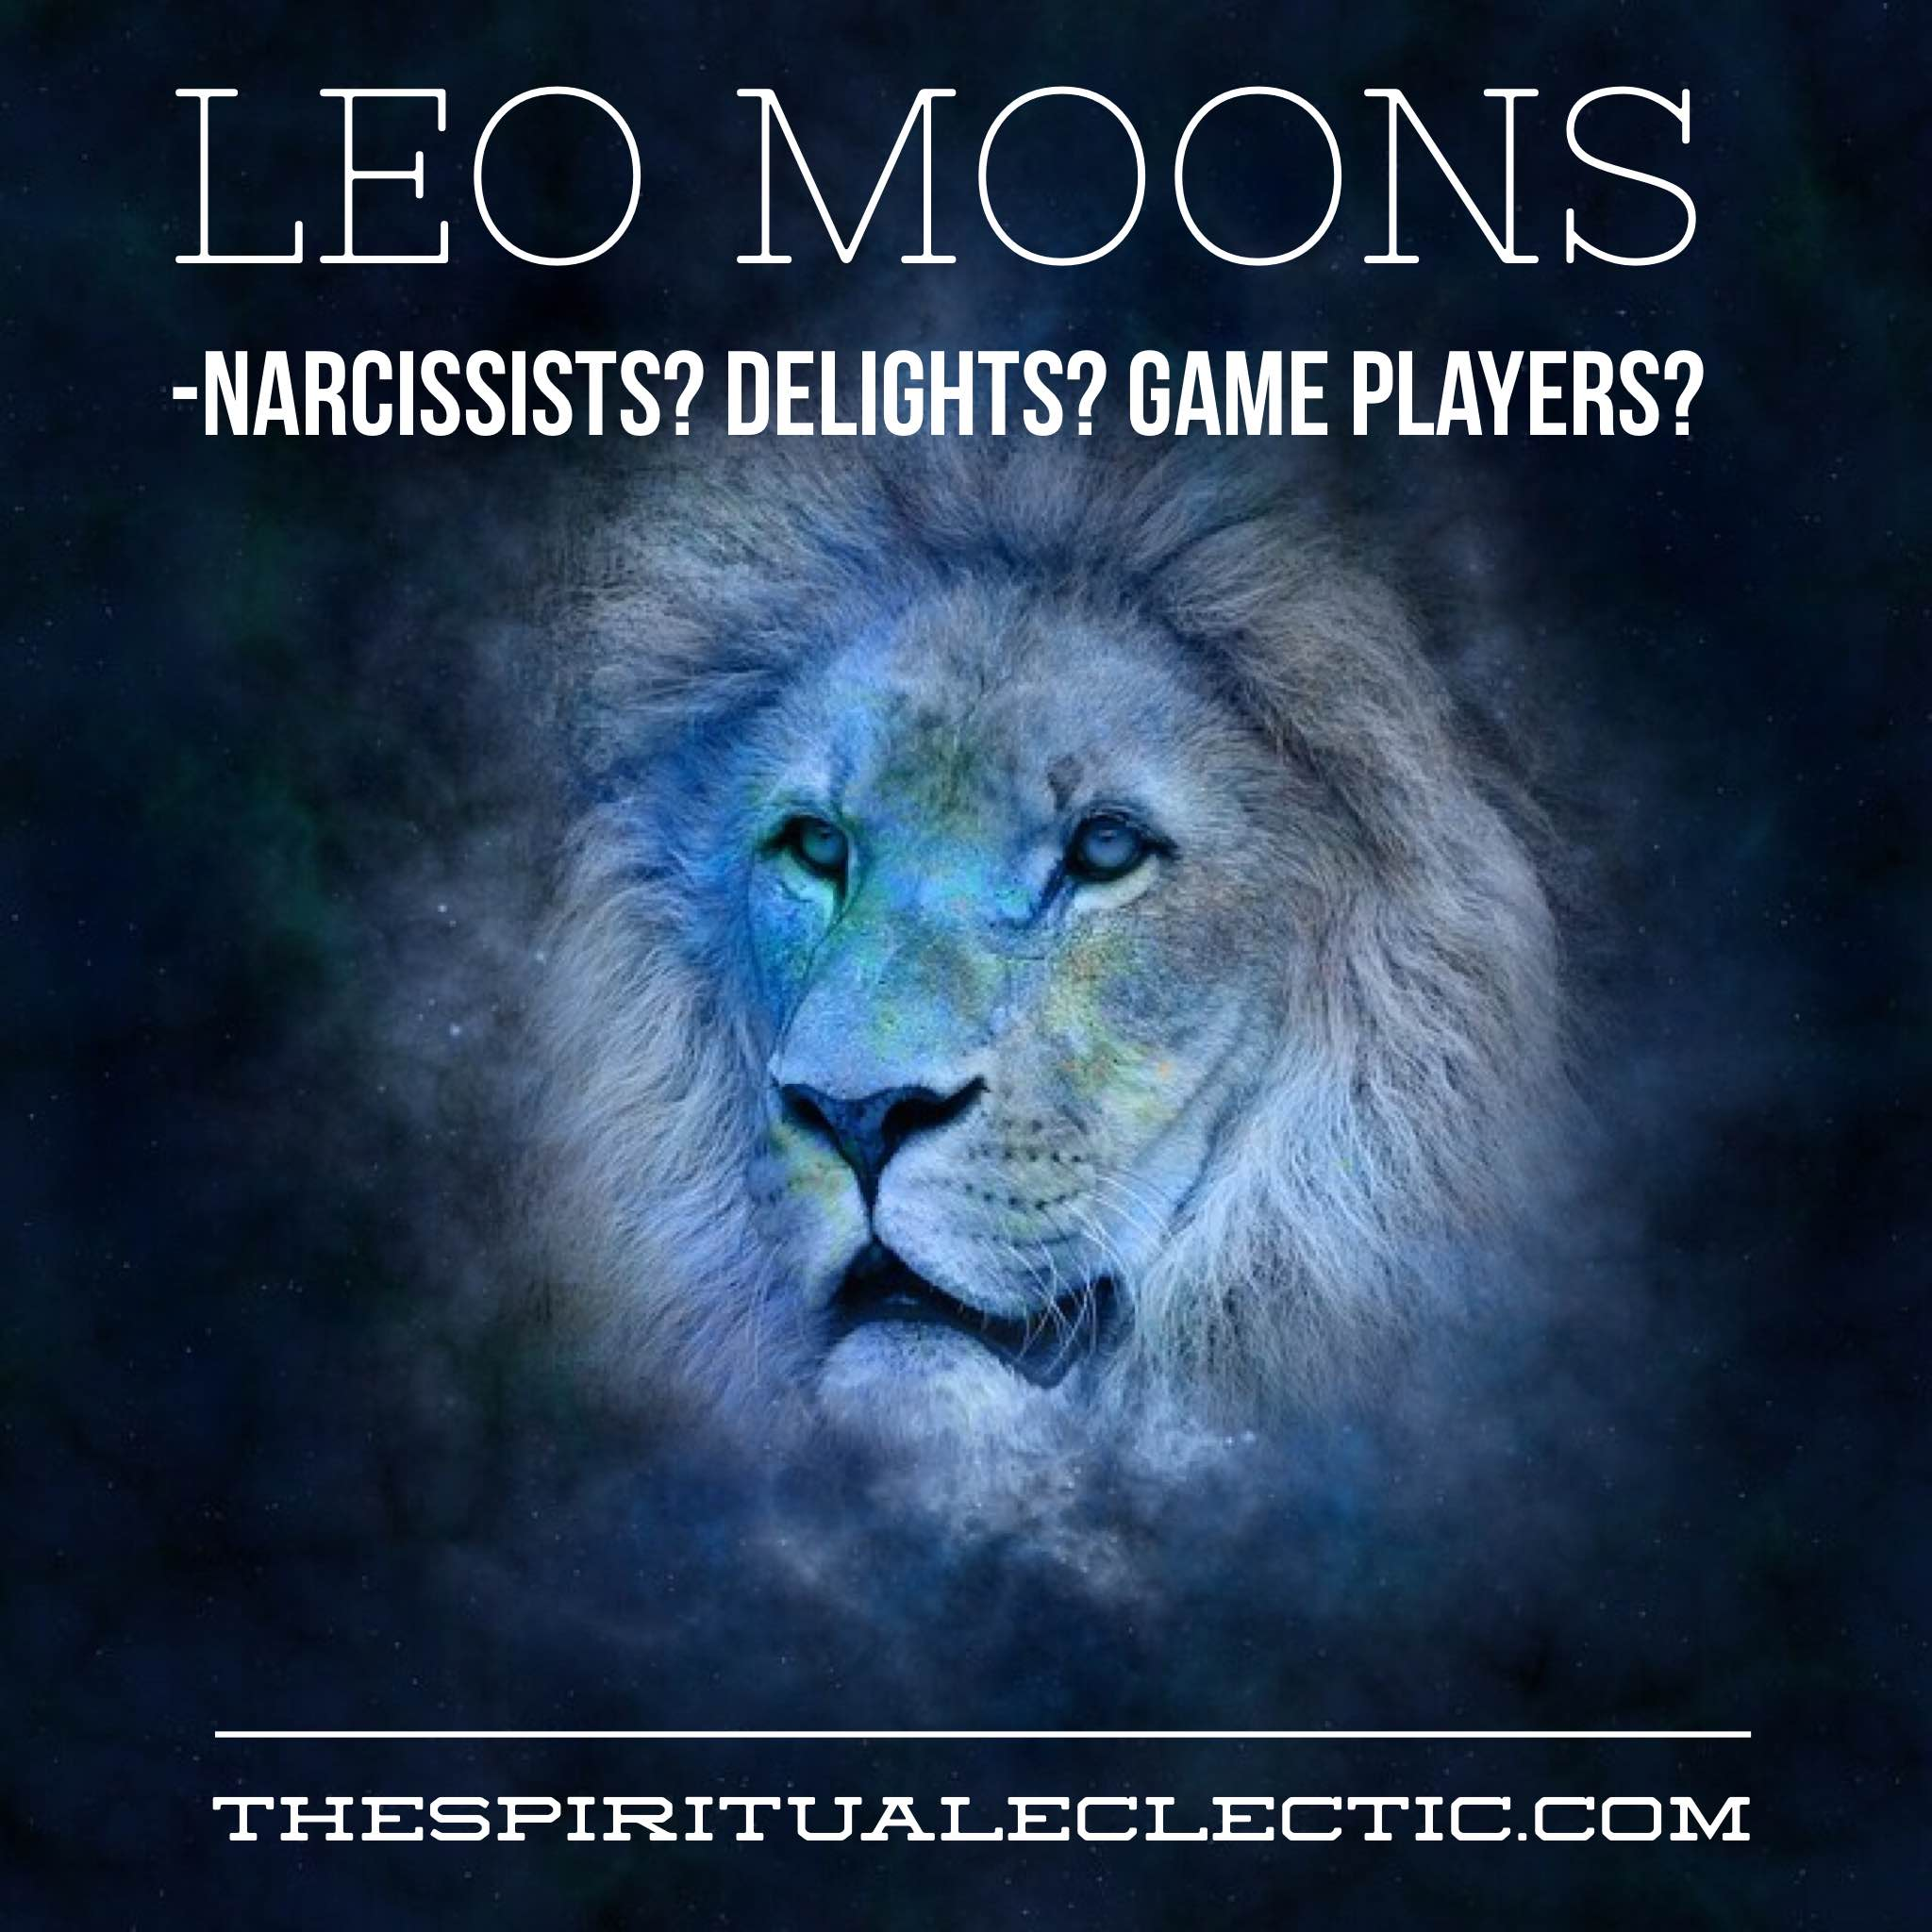 Applied Astrology: Leo Moons and Narcissistic Behaviors